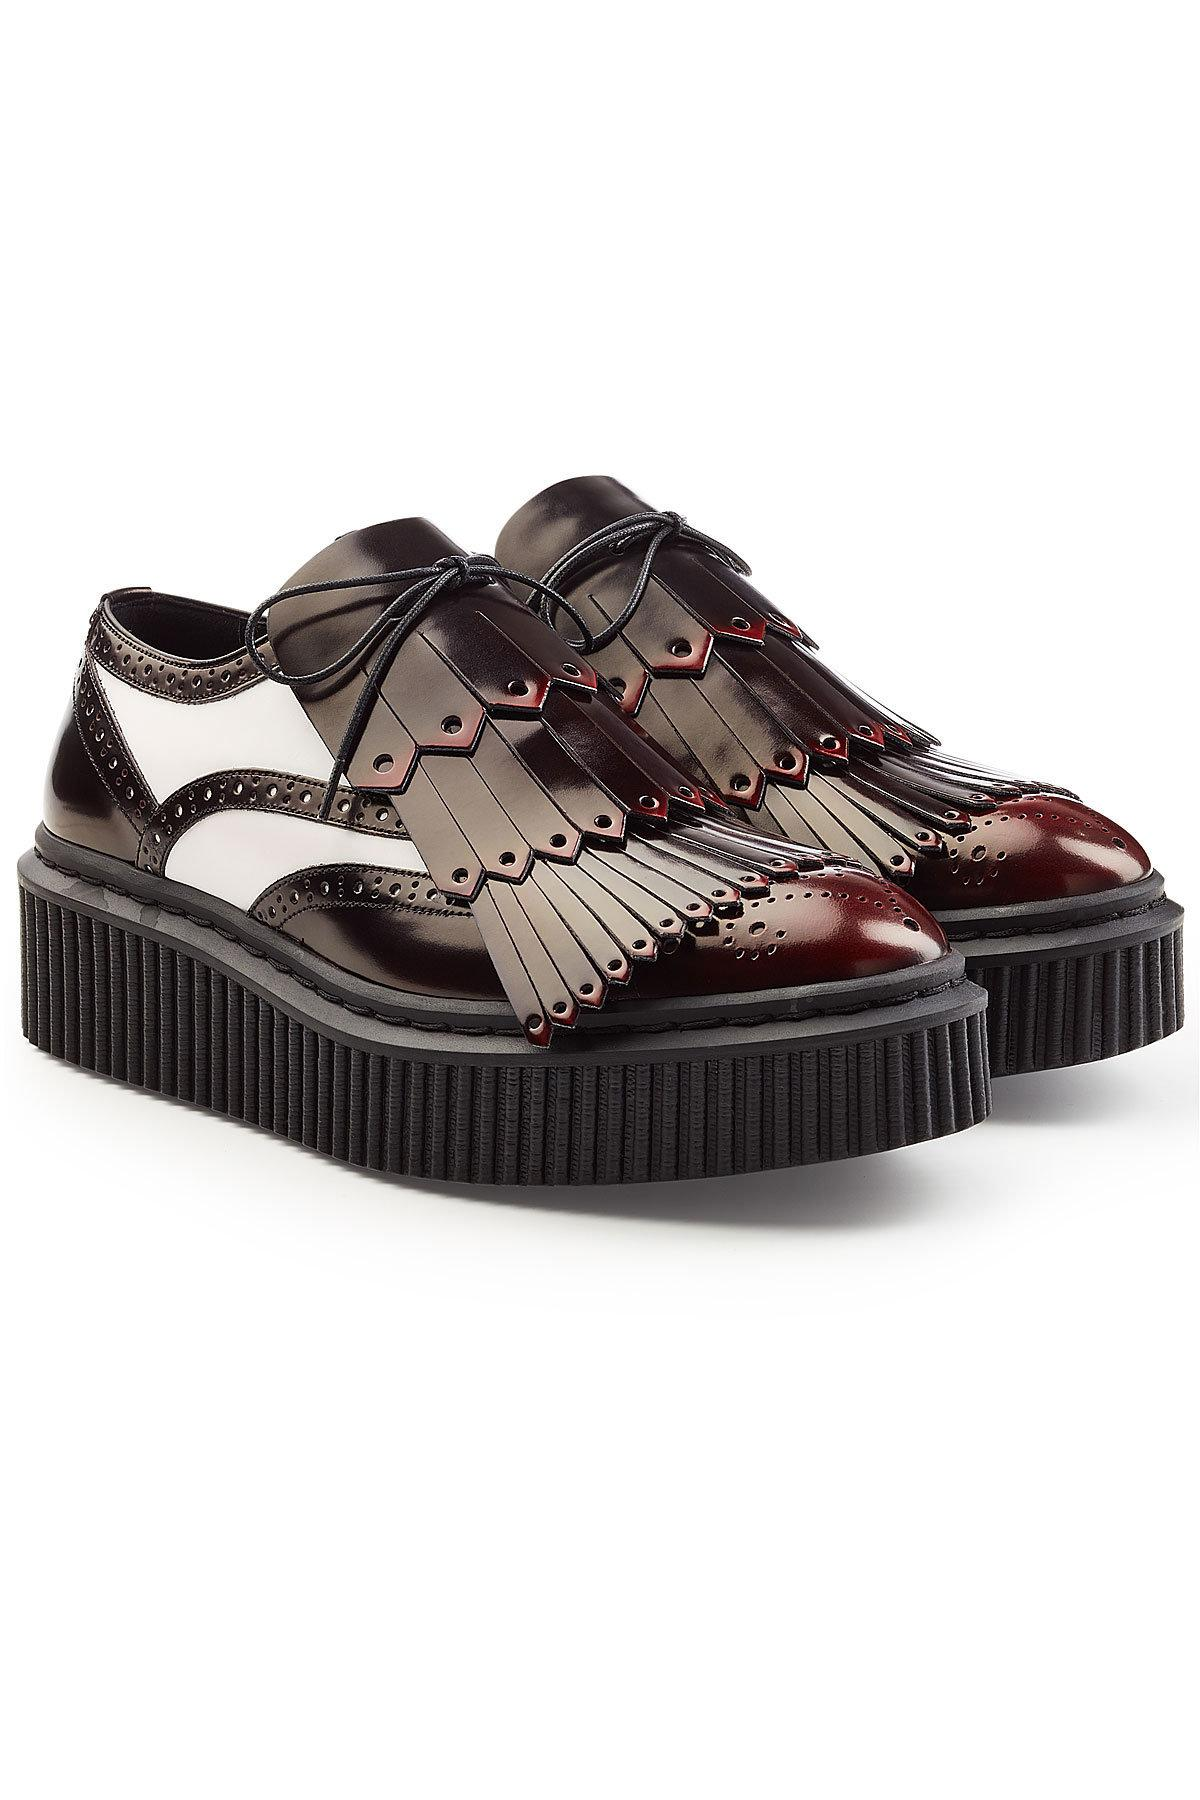 Buy Cheap For Cheap Burberry Platform Derby Kiltie Shoes Buy Online With Paypal Ebay Cheap Price Free Shipping Very Cheap Outlet Footlocker Finishline jUB2xunnX